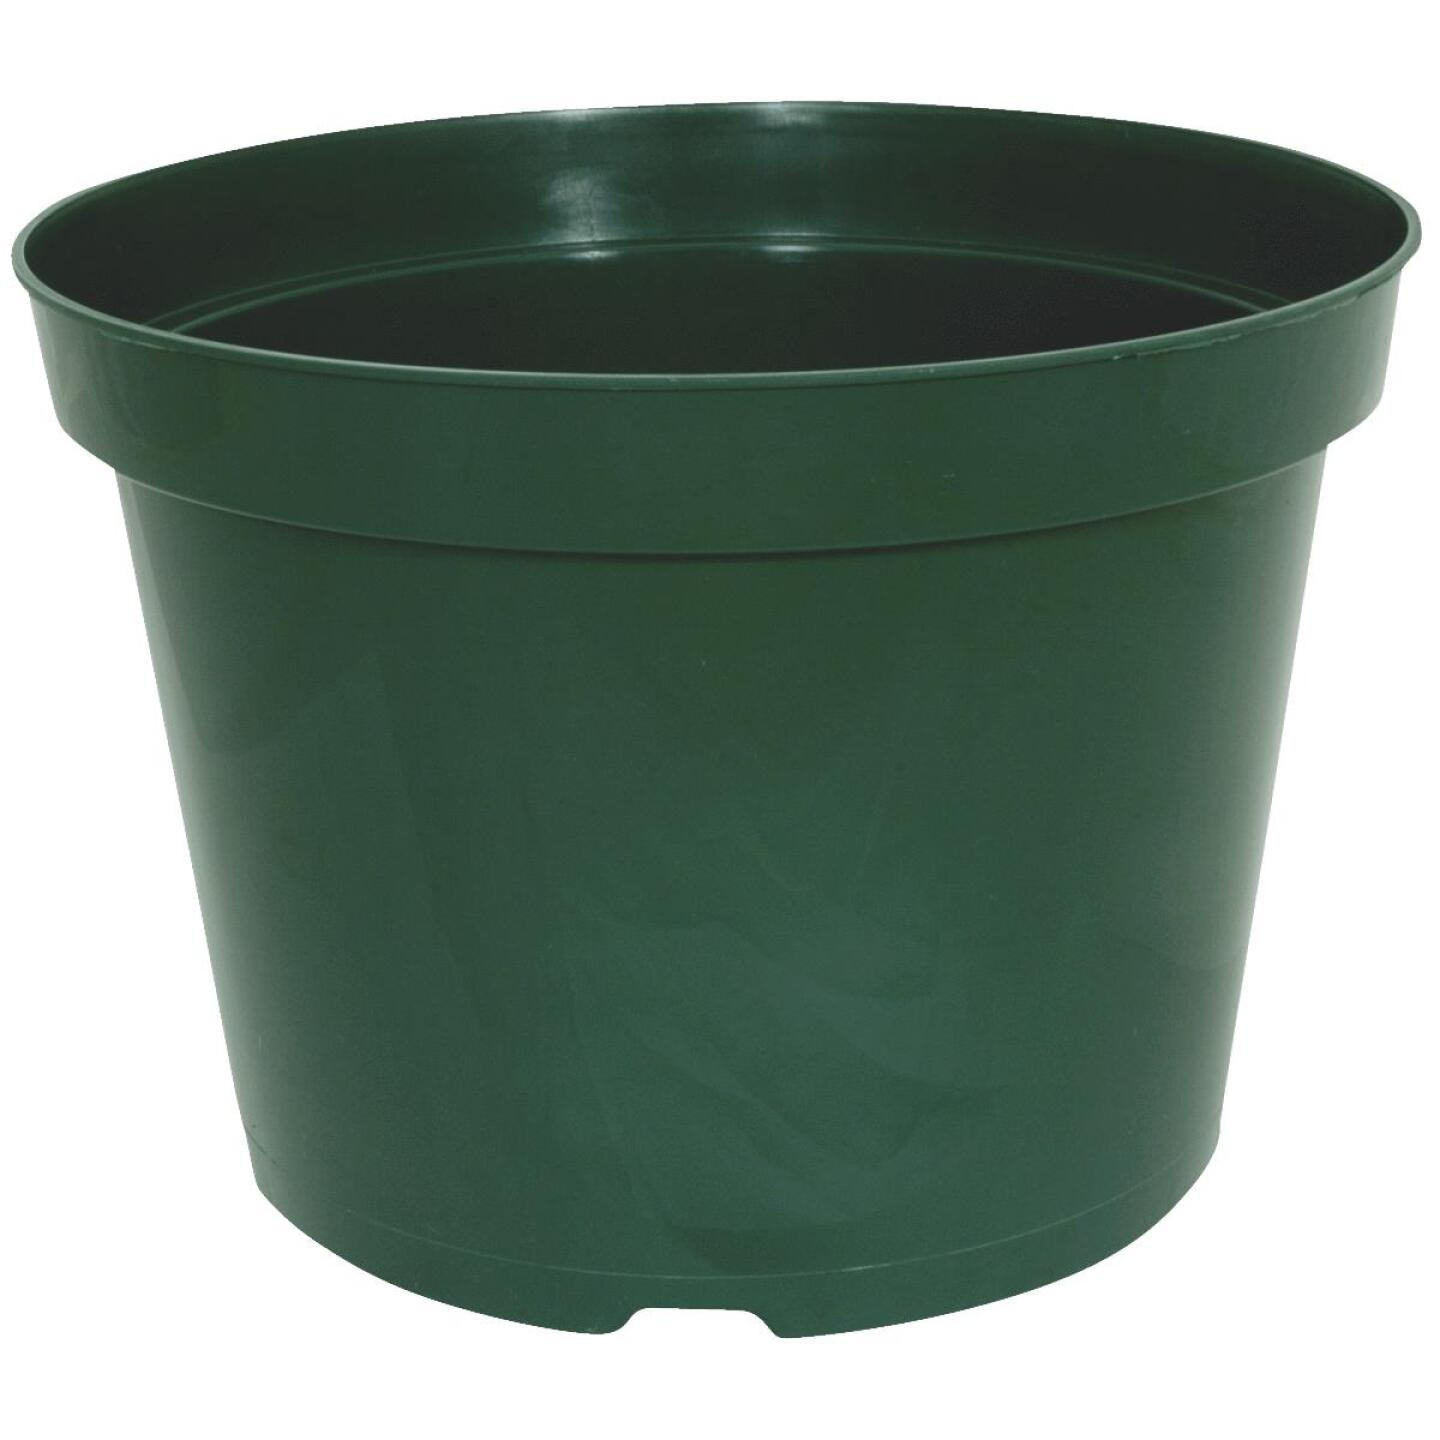 Myers 4.63 In. H. x 6 In. Dia. Green Poly Flower Pot Image 1